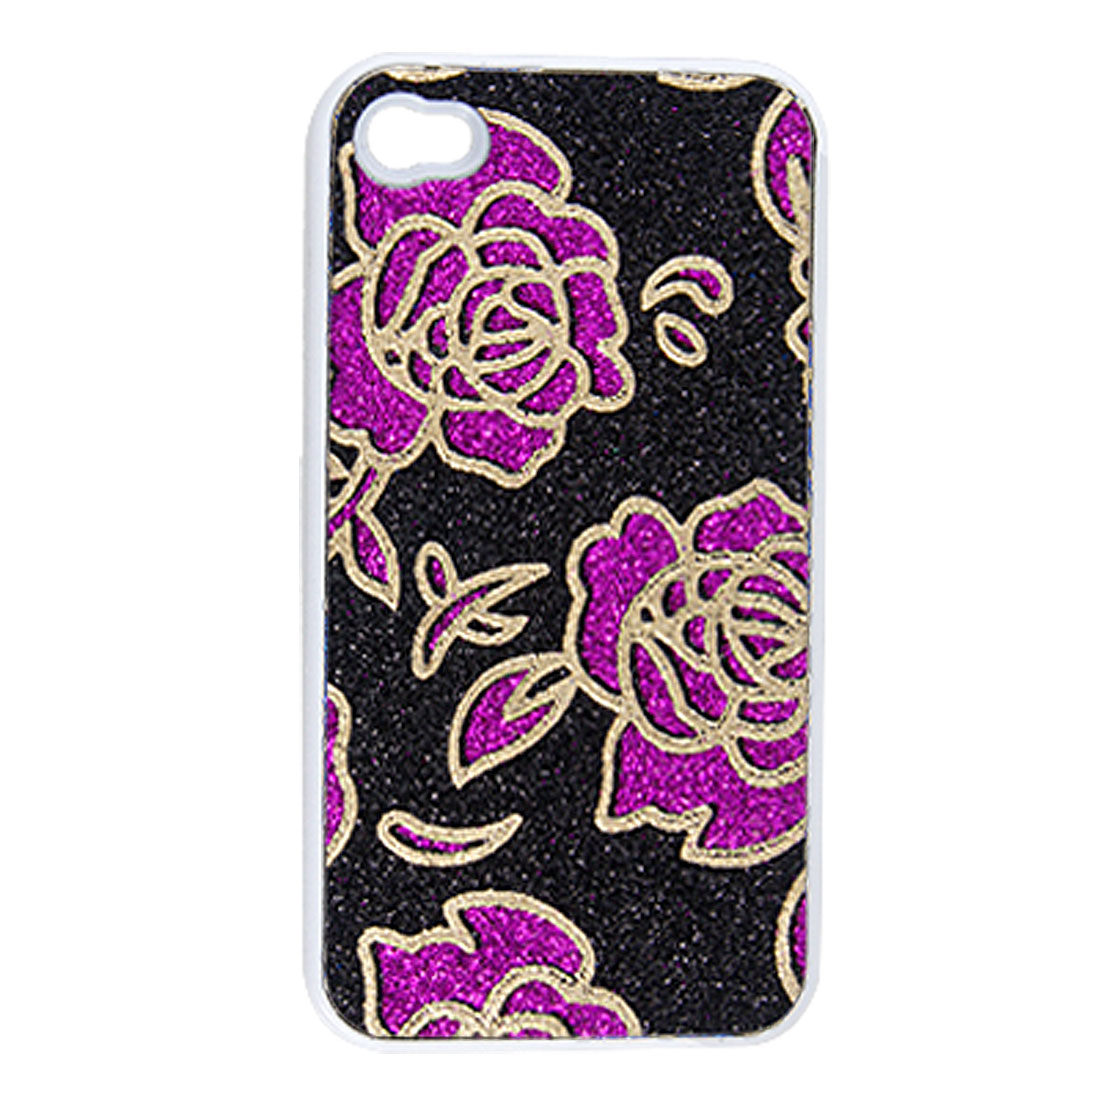 Black Fuchsia Flower Pattern Powder Plastic Back Case for iPhone 4 4G 4S